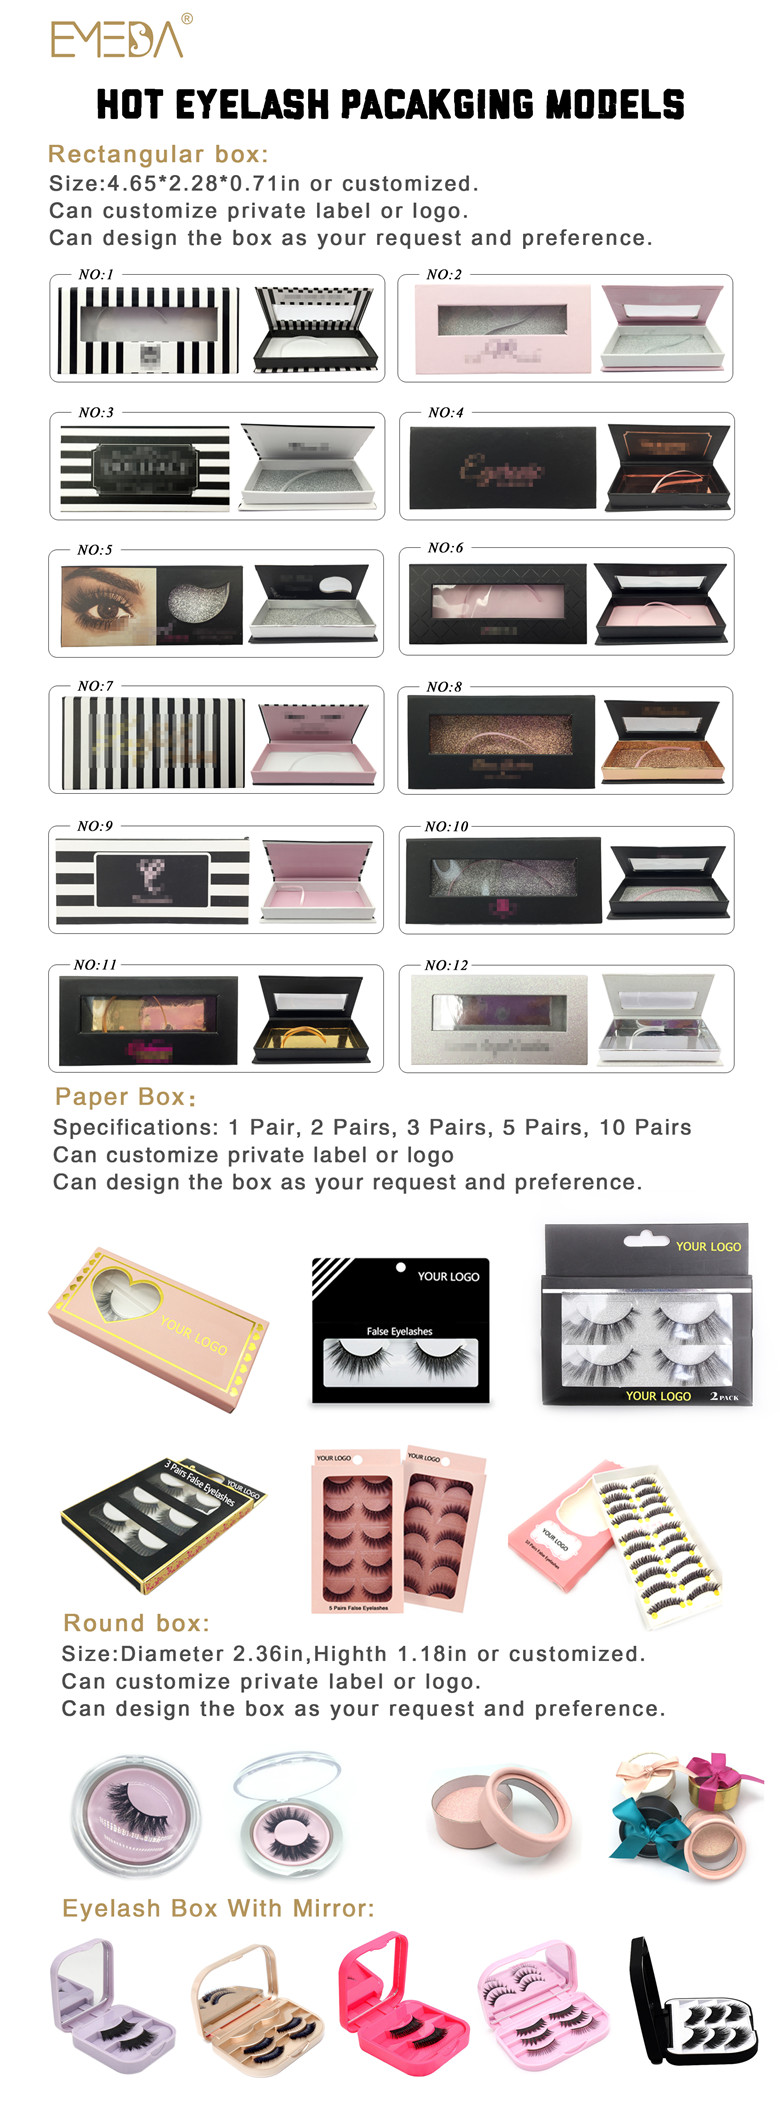 Eyelash-boxes-new_smallsize.jpg